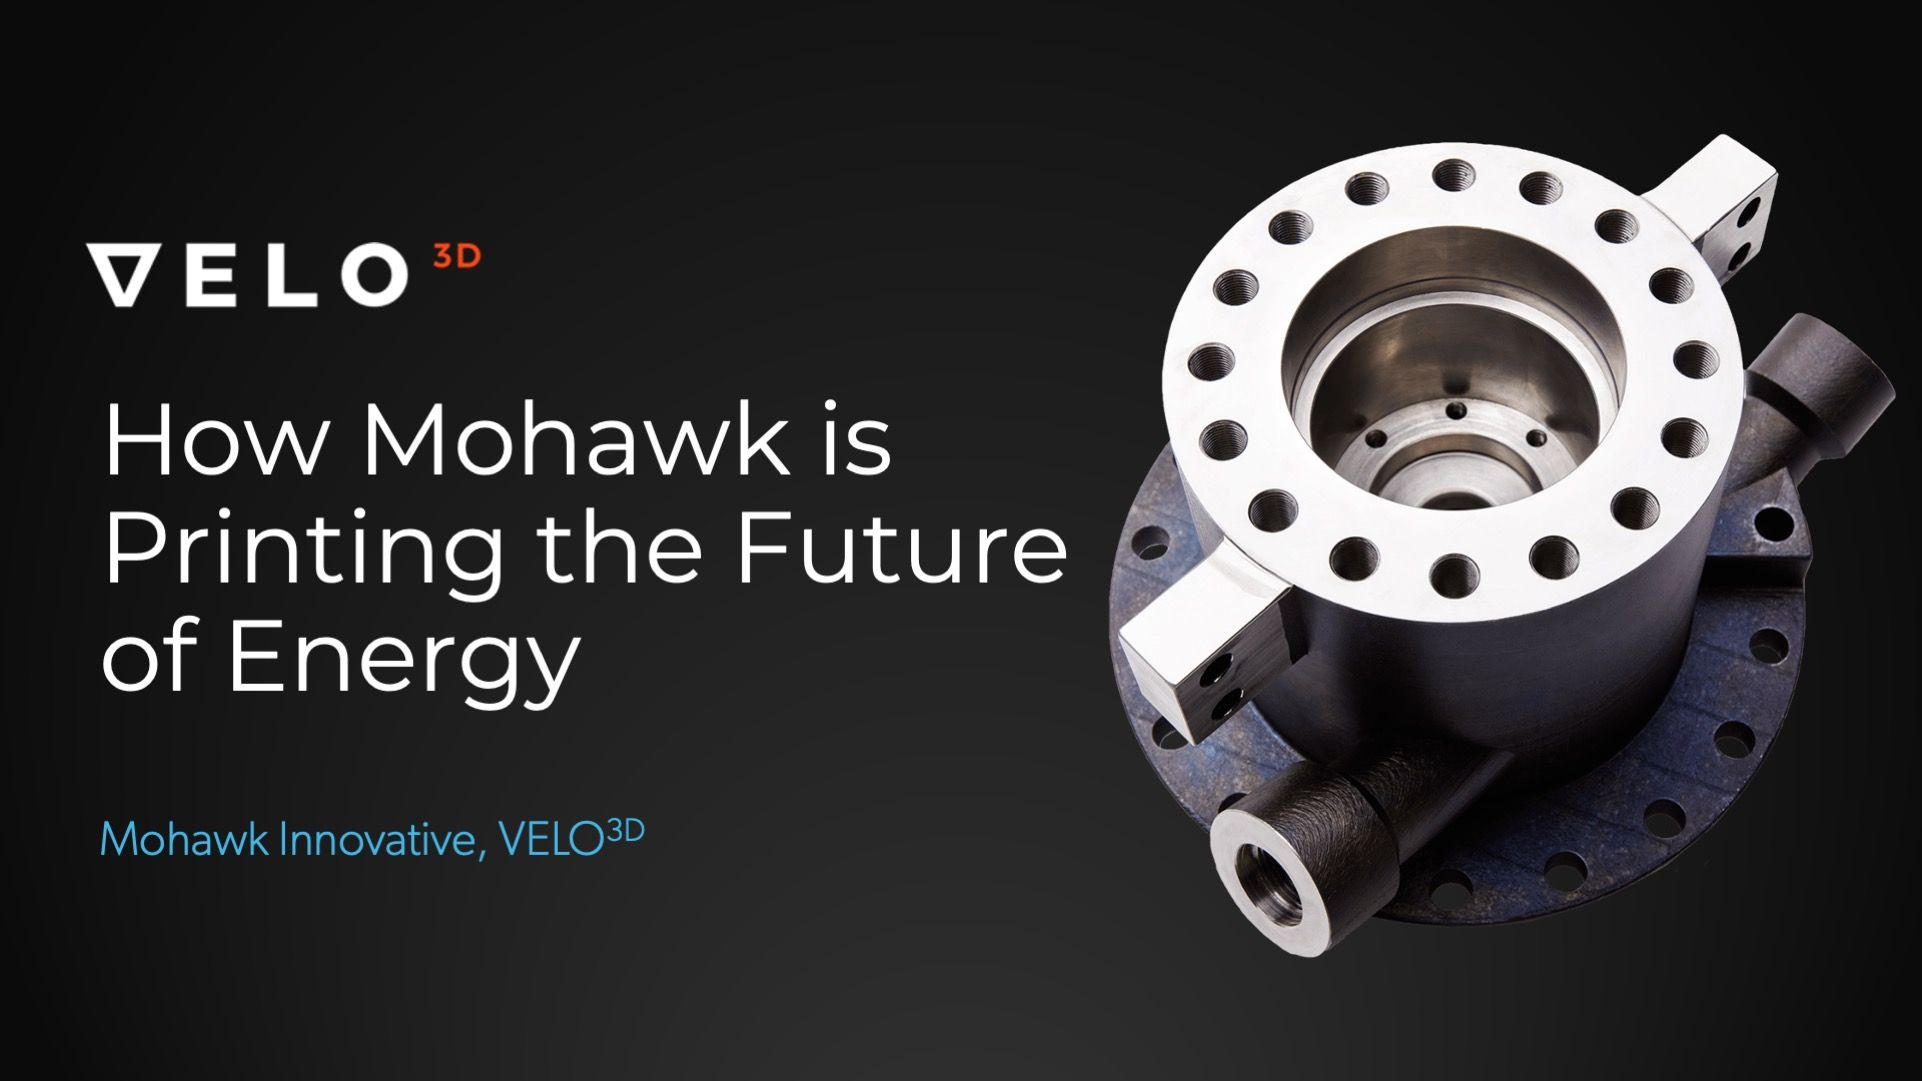 How Mohawk Innovative Technology is Printing the Future of Energy